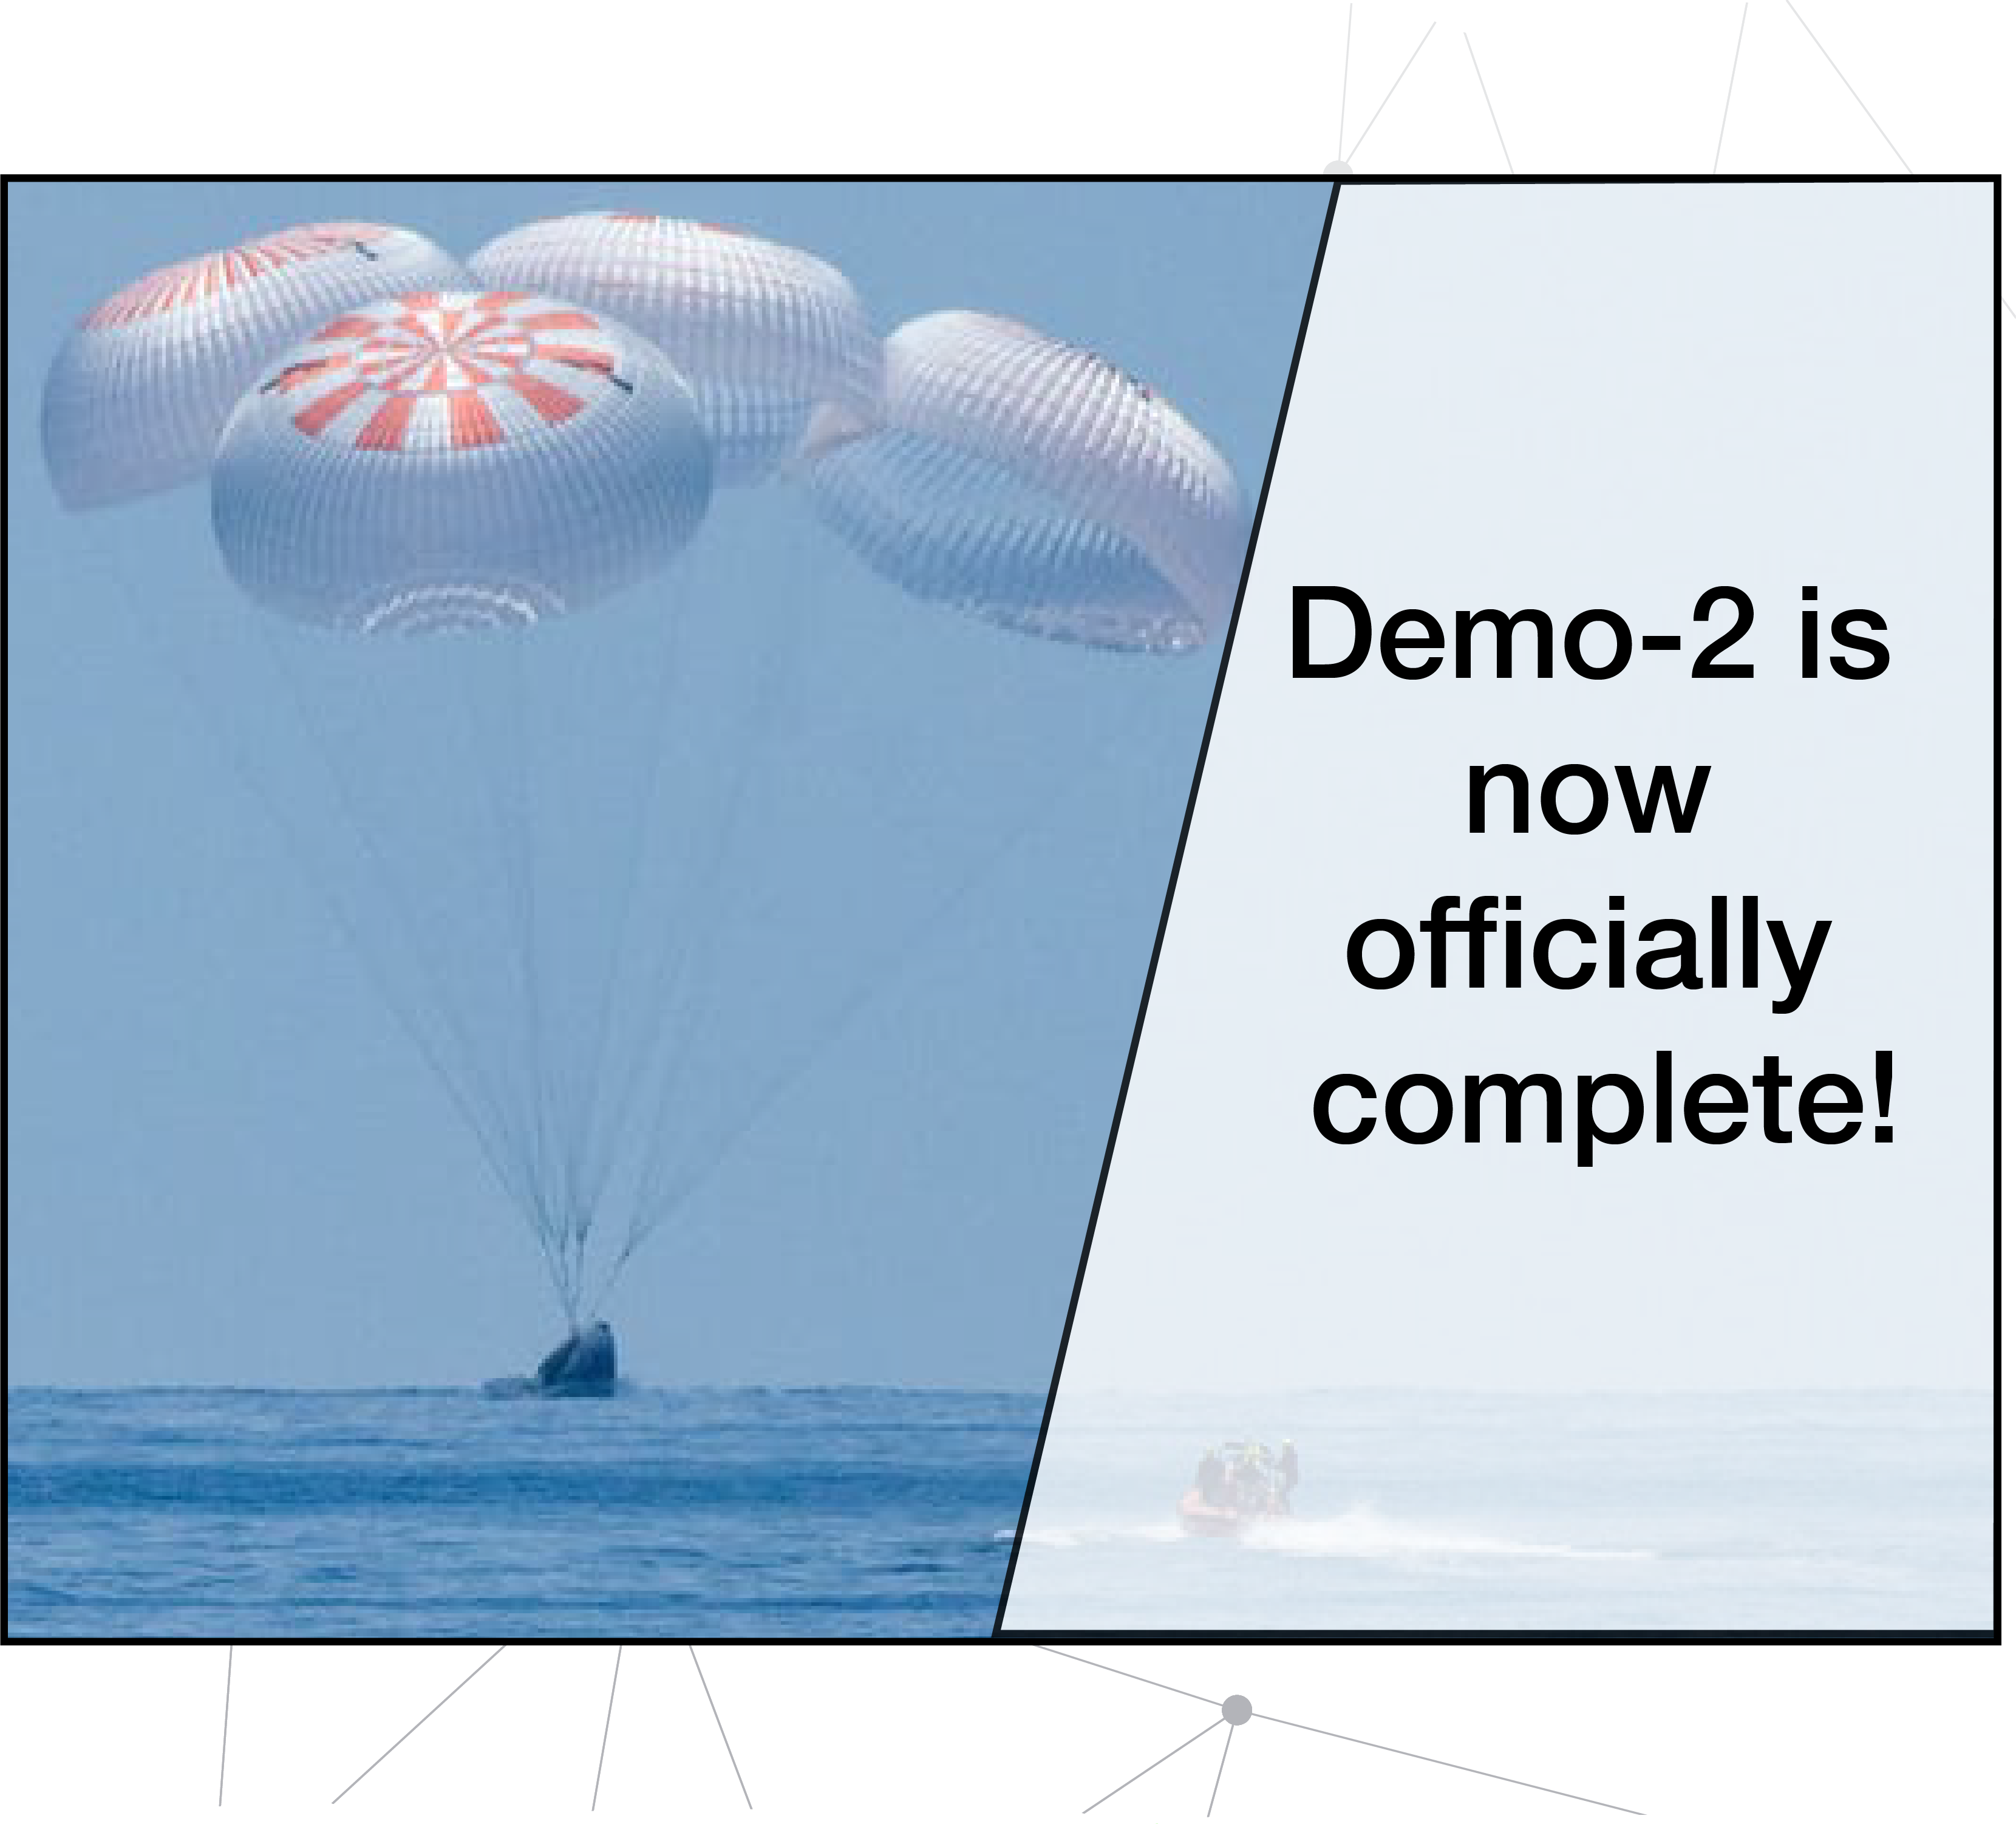 Demo-2 is now officially complete!